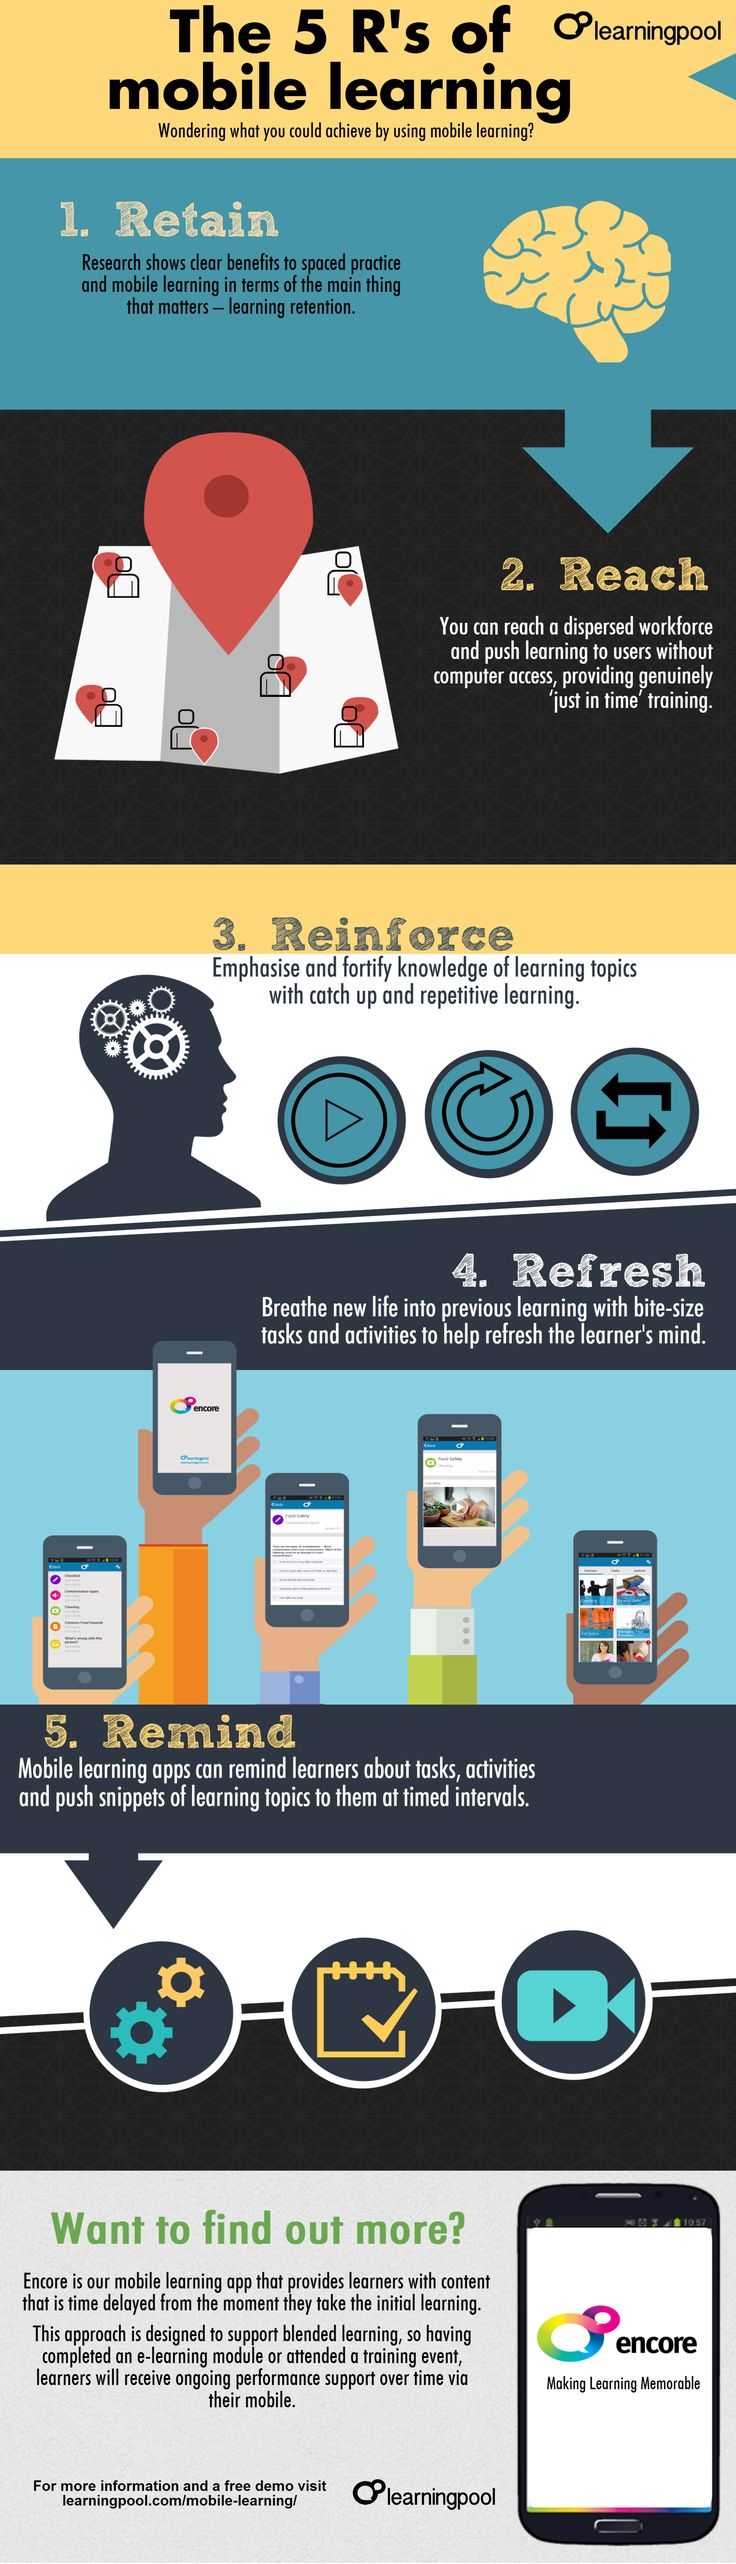 The 5 R´s of Mobile Learning #mLearning #eLearning